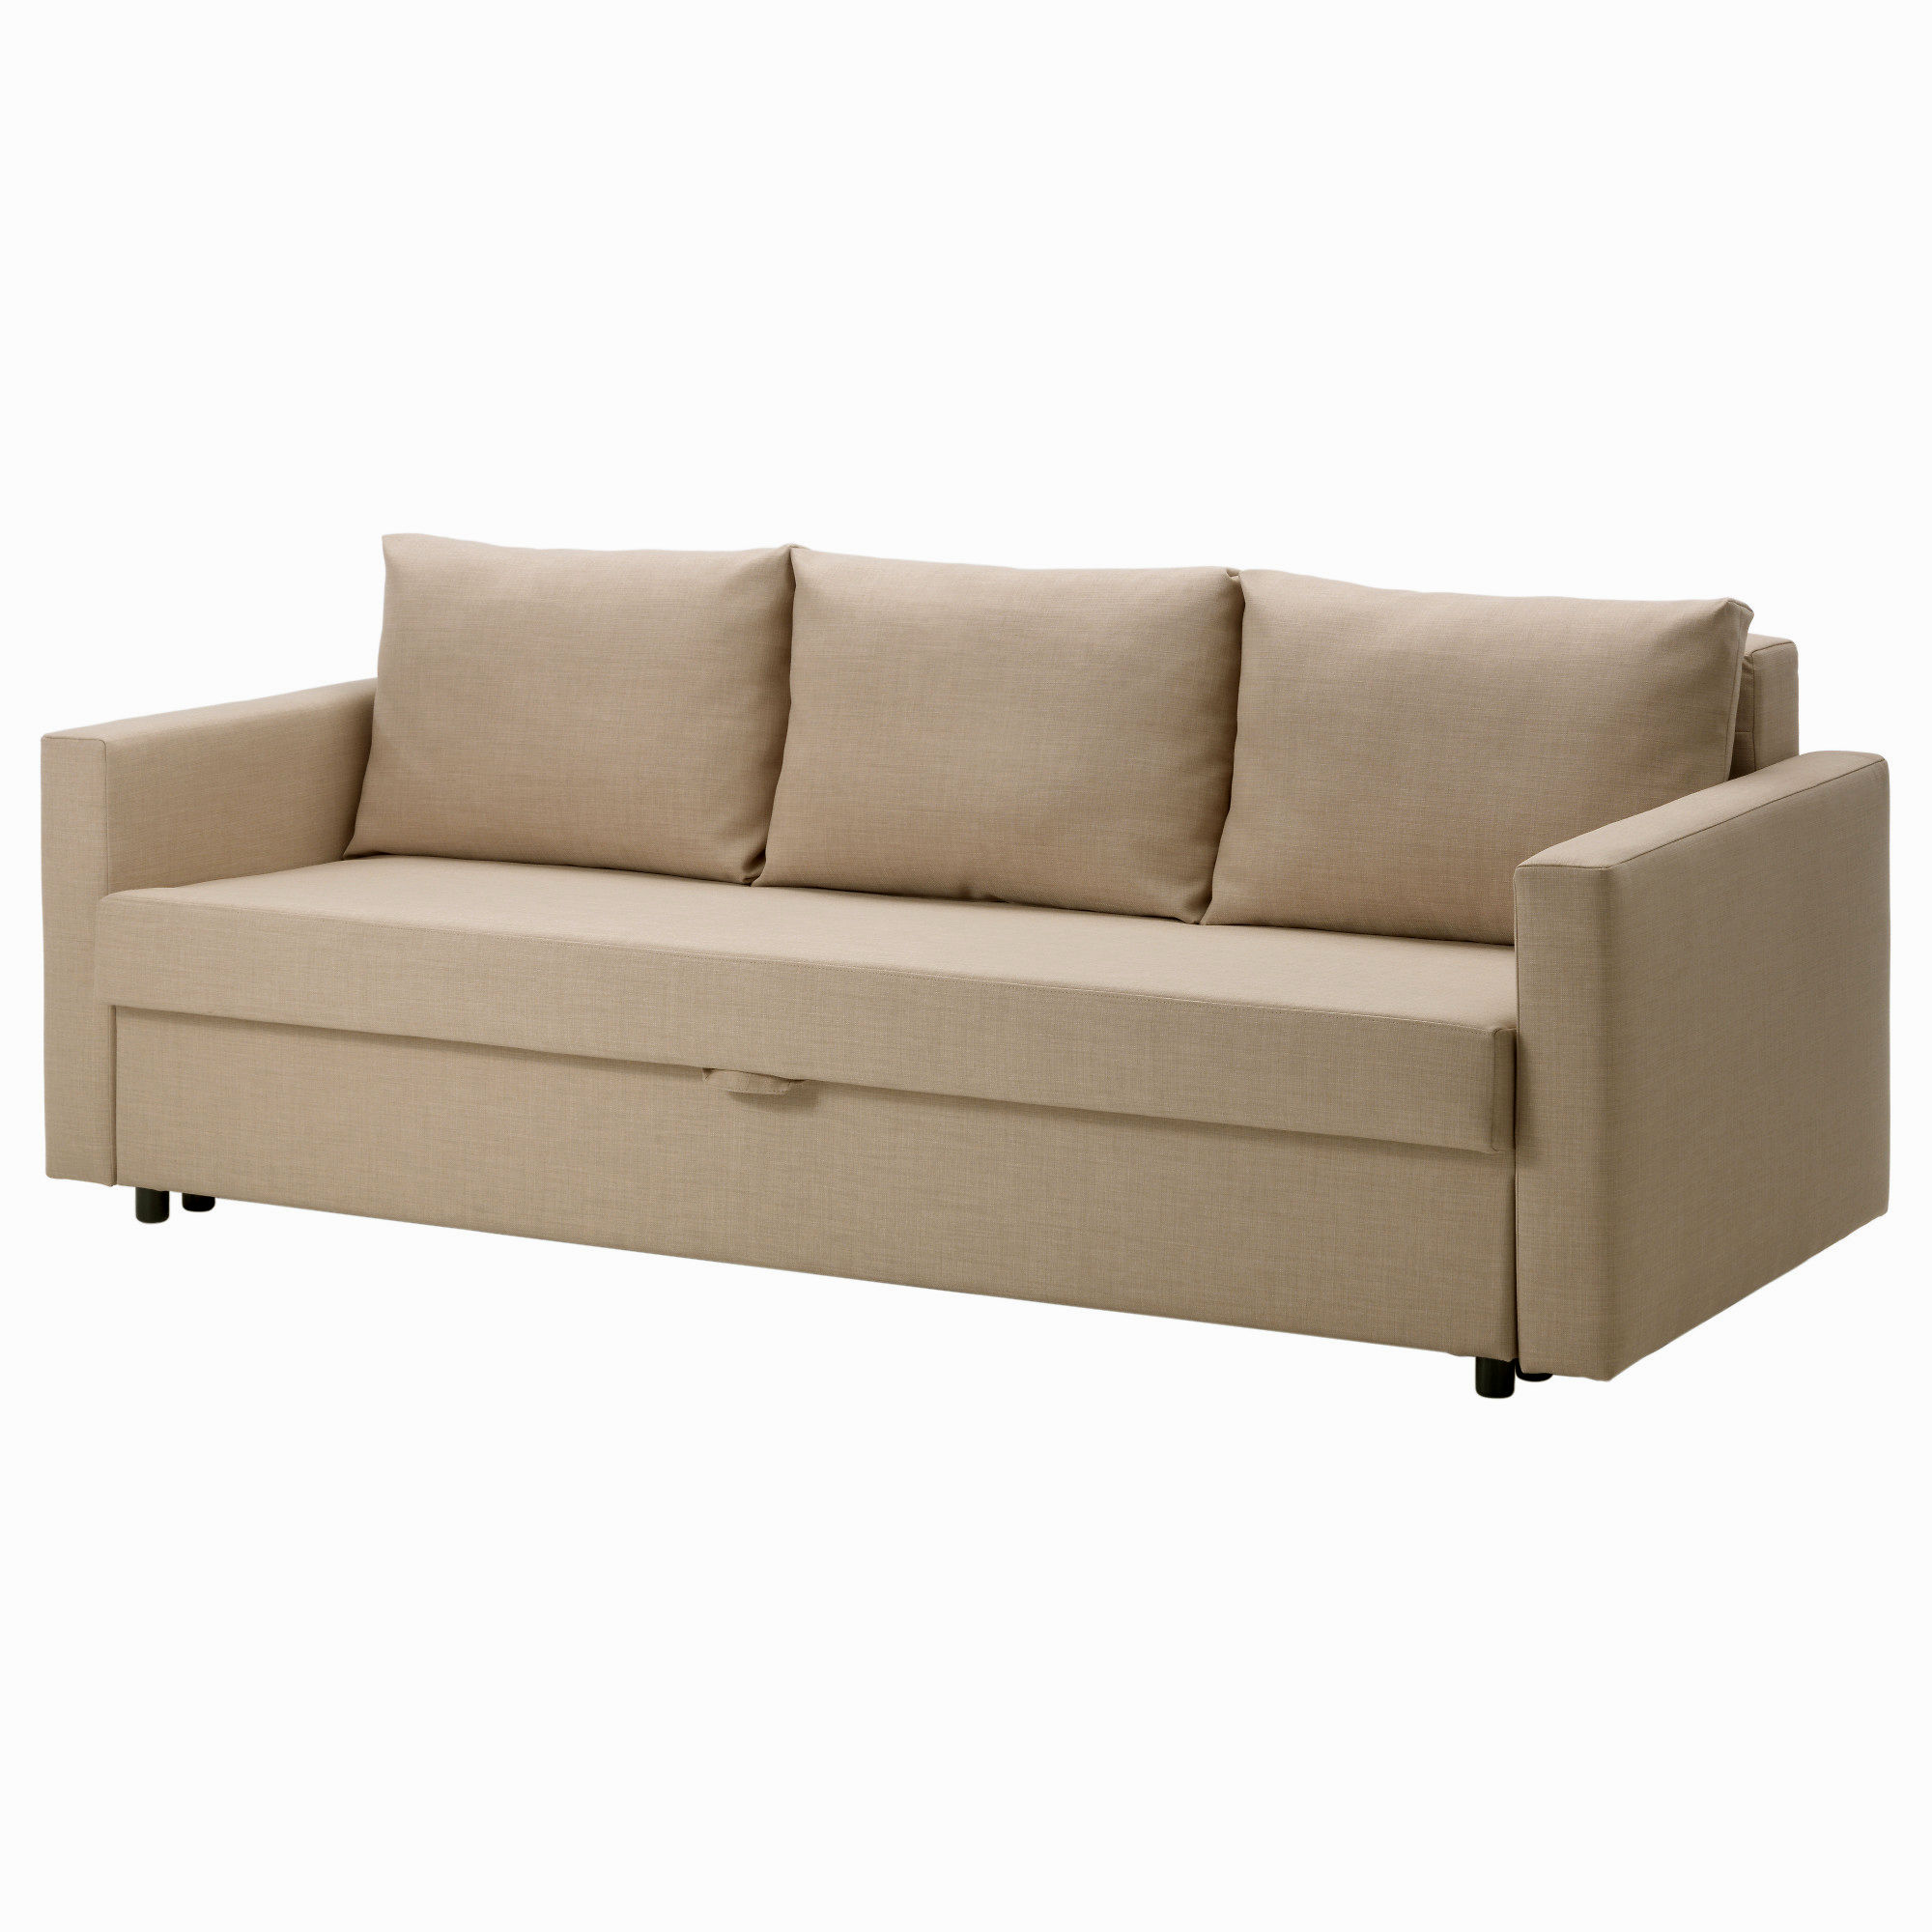 latest twin sleeper sofa ikea plan-Fantastic Twin Sleeper sofa Ikea Pattern